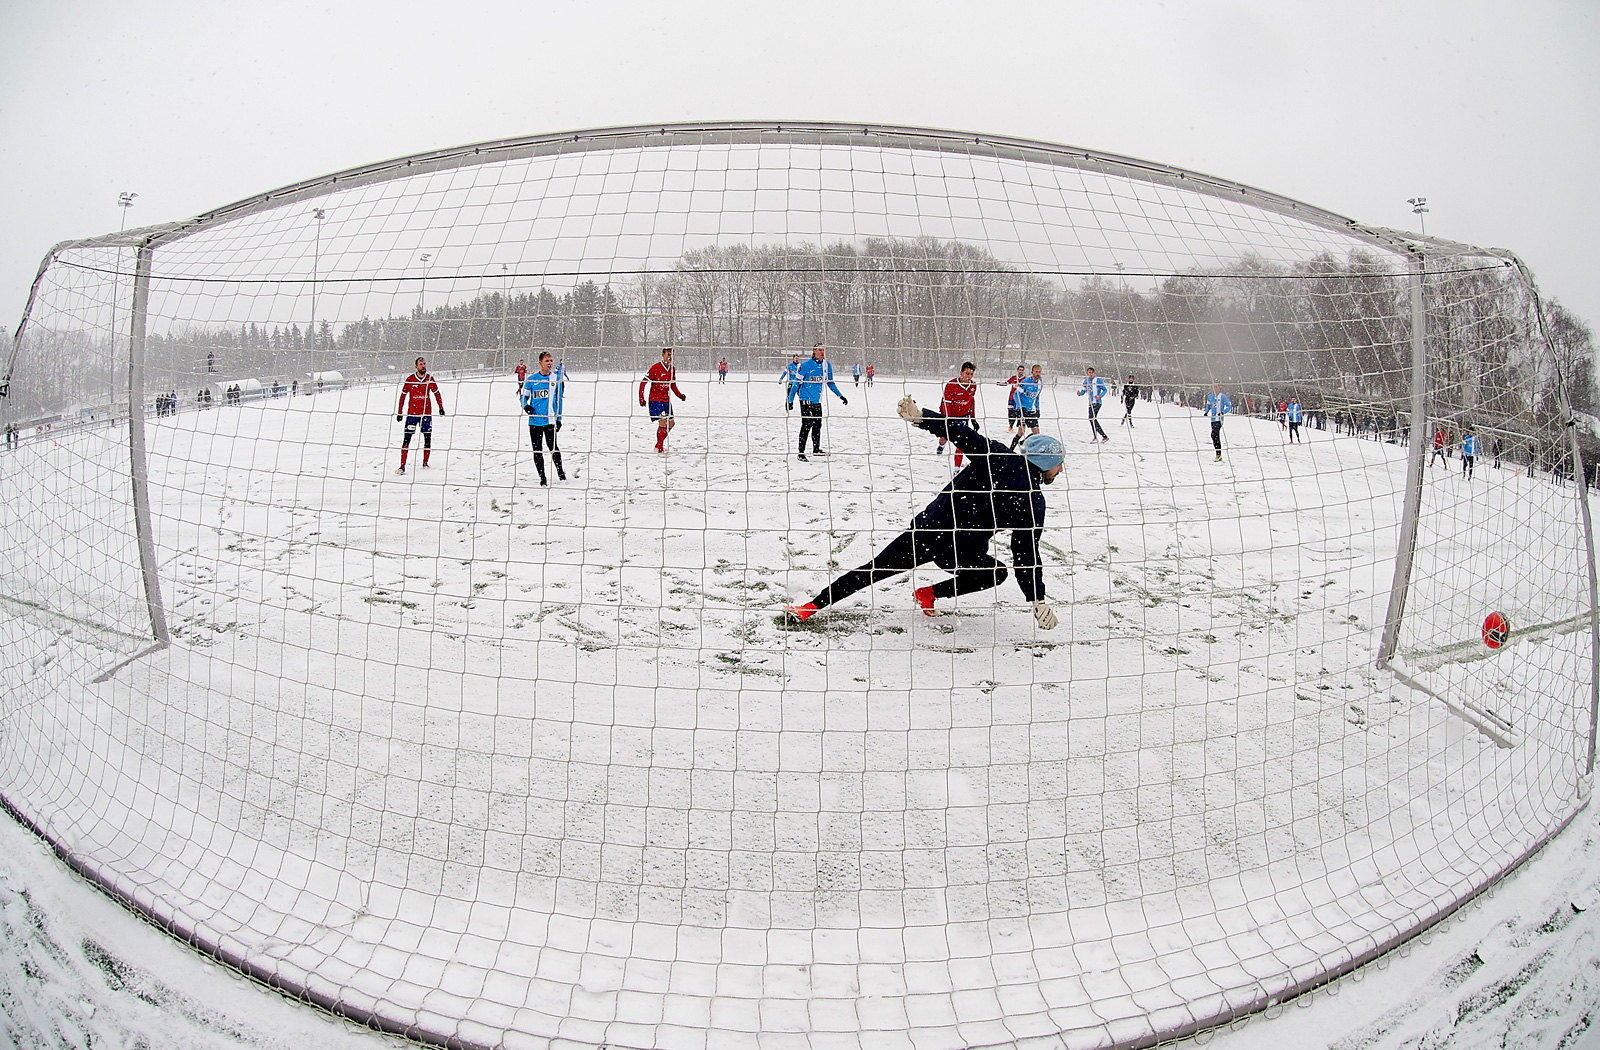 Preseason action in the snow between FC Vestsjalland and FC Roskilde at Slagelse Stadion on January 24, 2015 in Slagelse, Denmark.